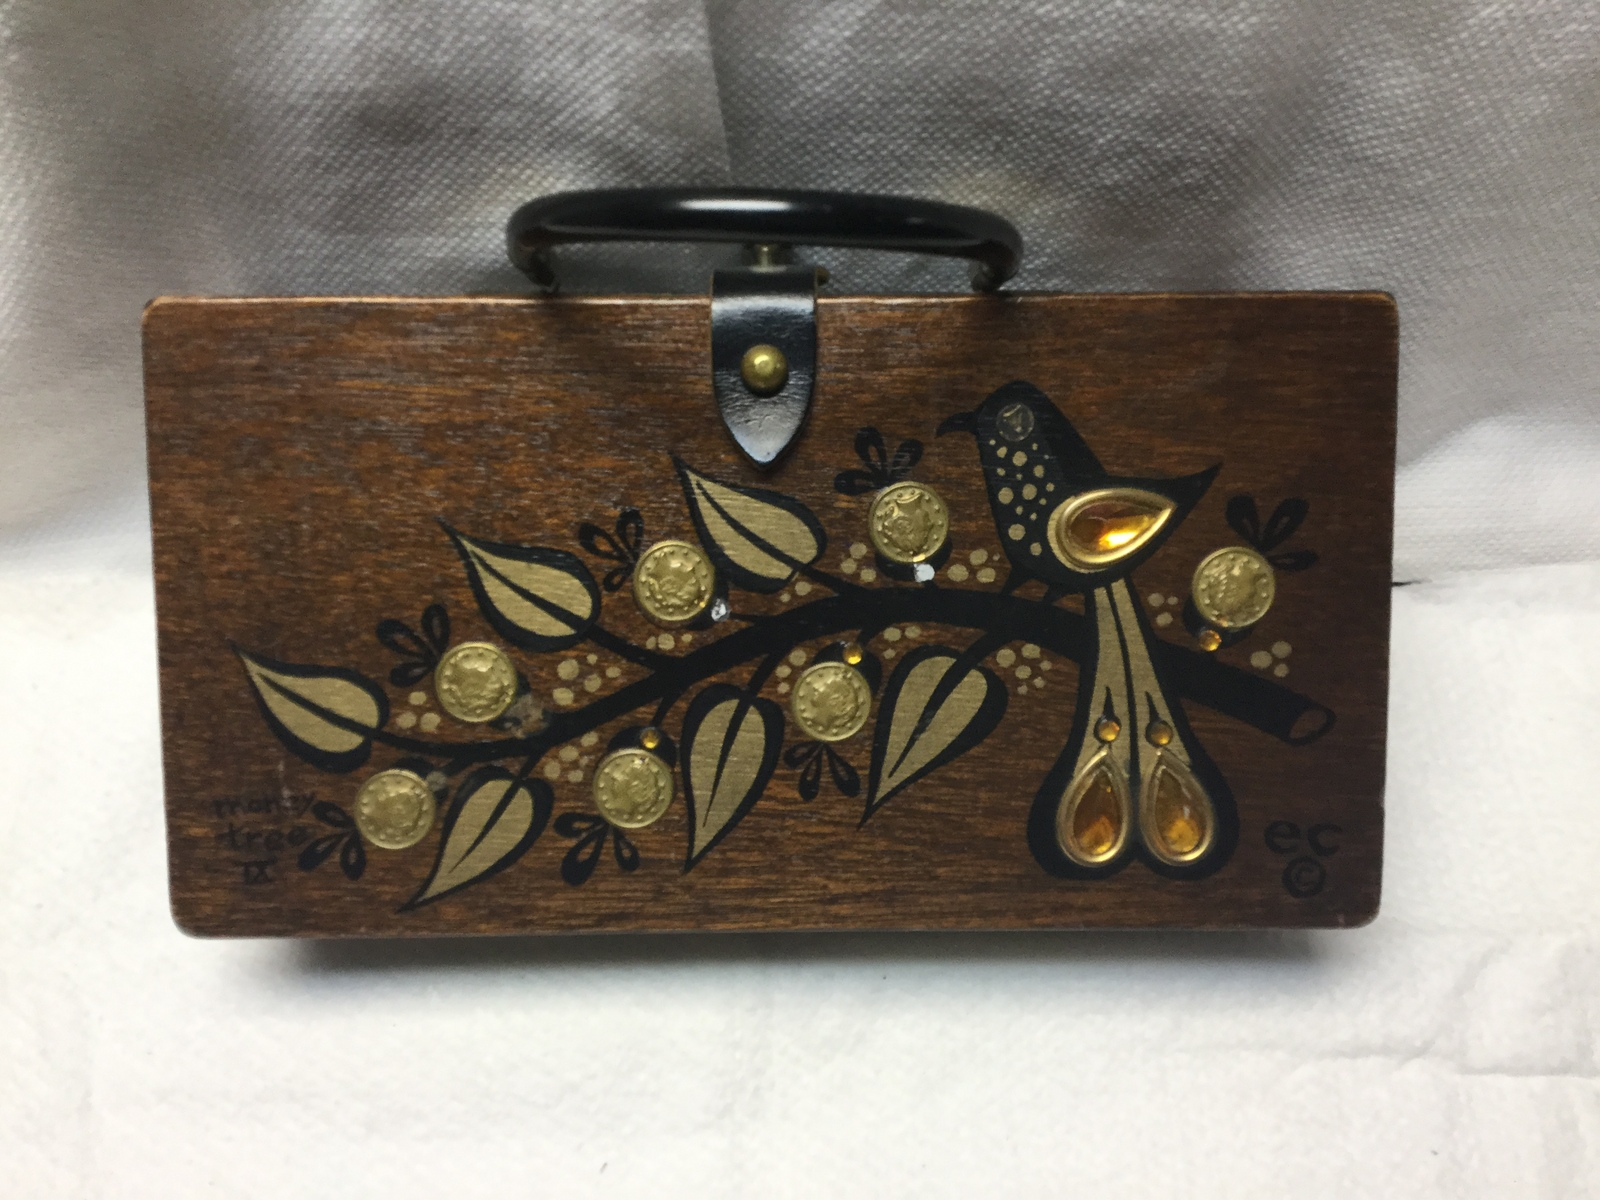 3ae3e9ce41 Enid Collins vintage 1964 Money Tree box bag and 24 similar items. 15aefd40  d9a2 42ef a4a9 0670ec839afe